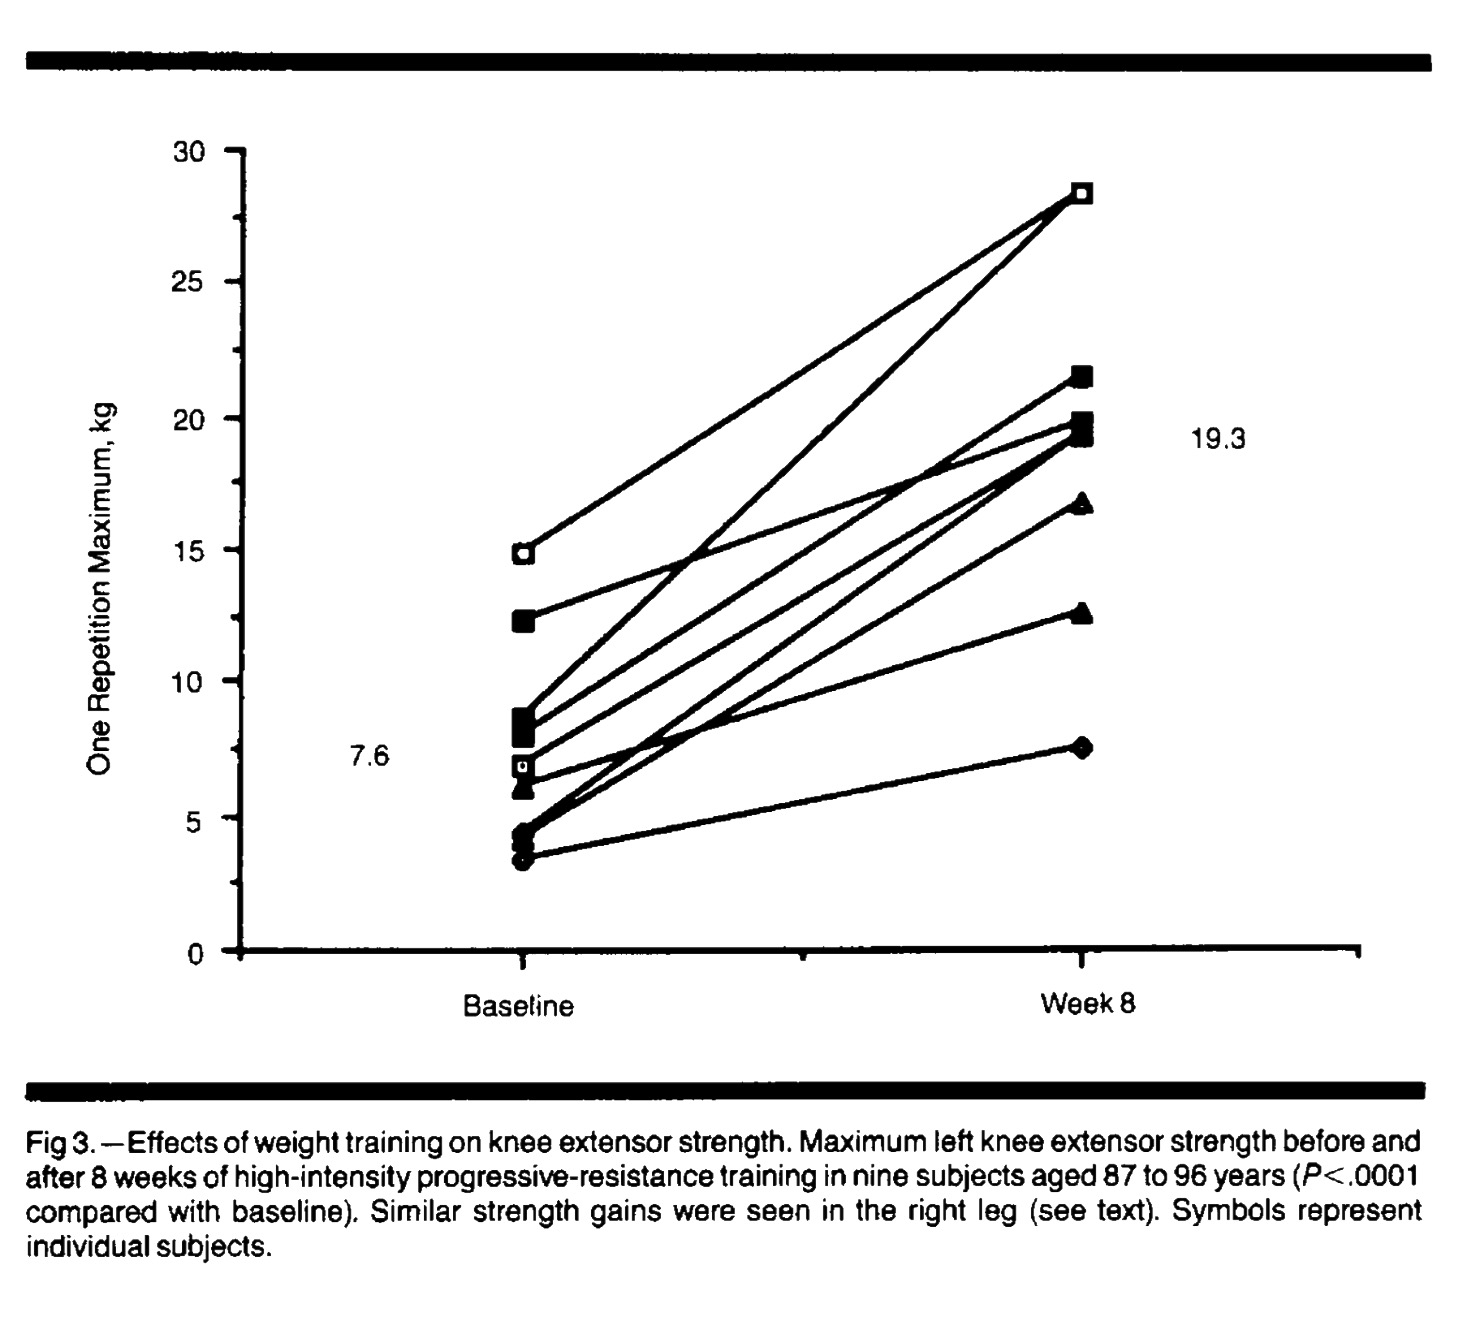 exercise slows the ageing process muscle strength improvement follows resistance  training